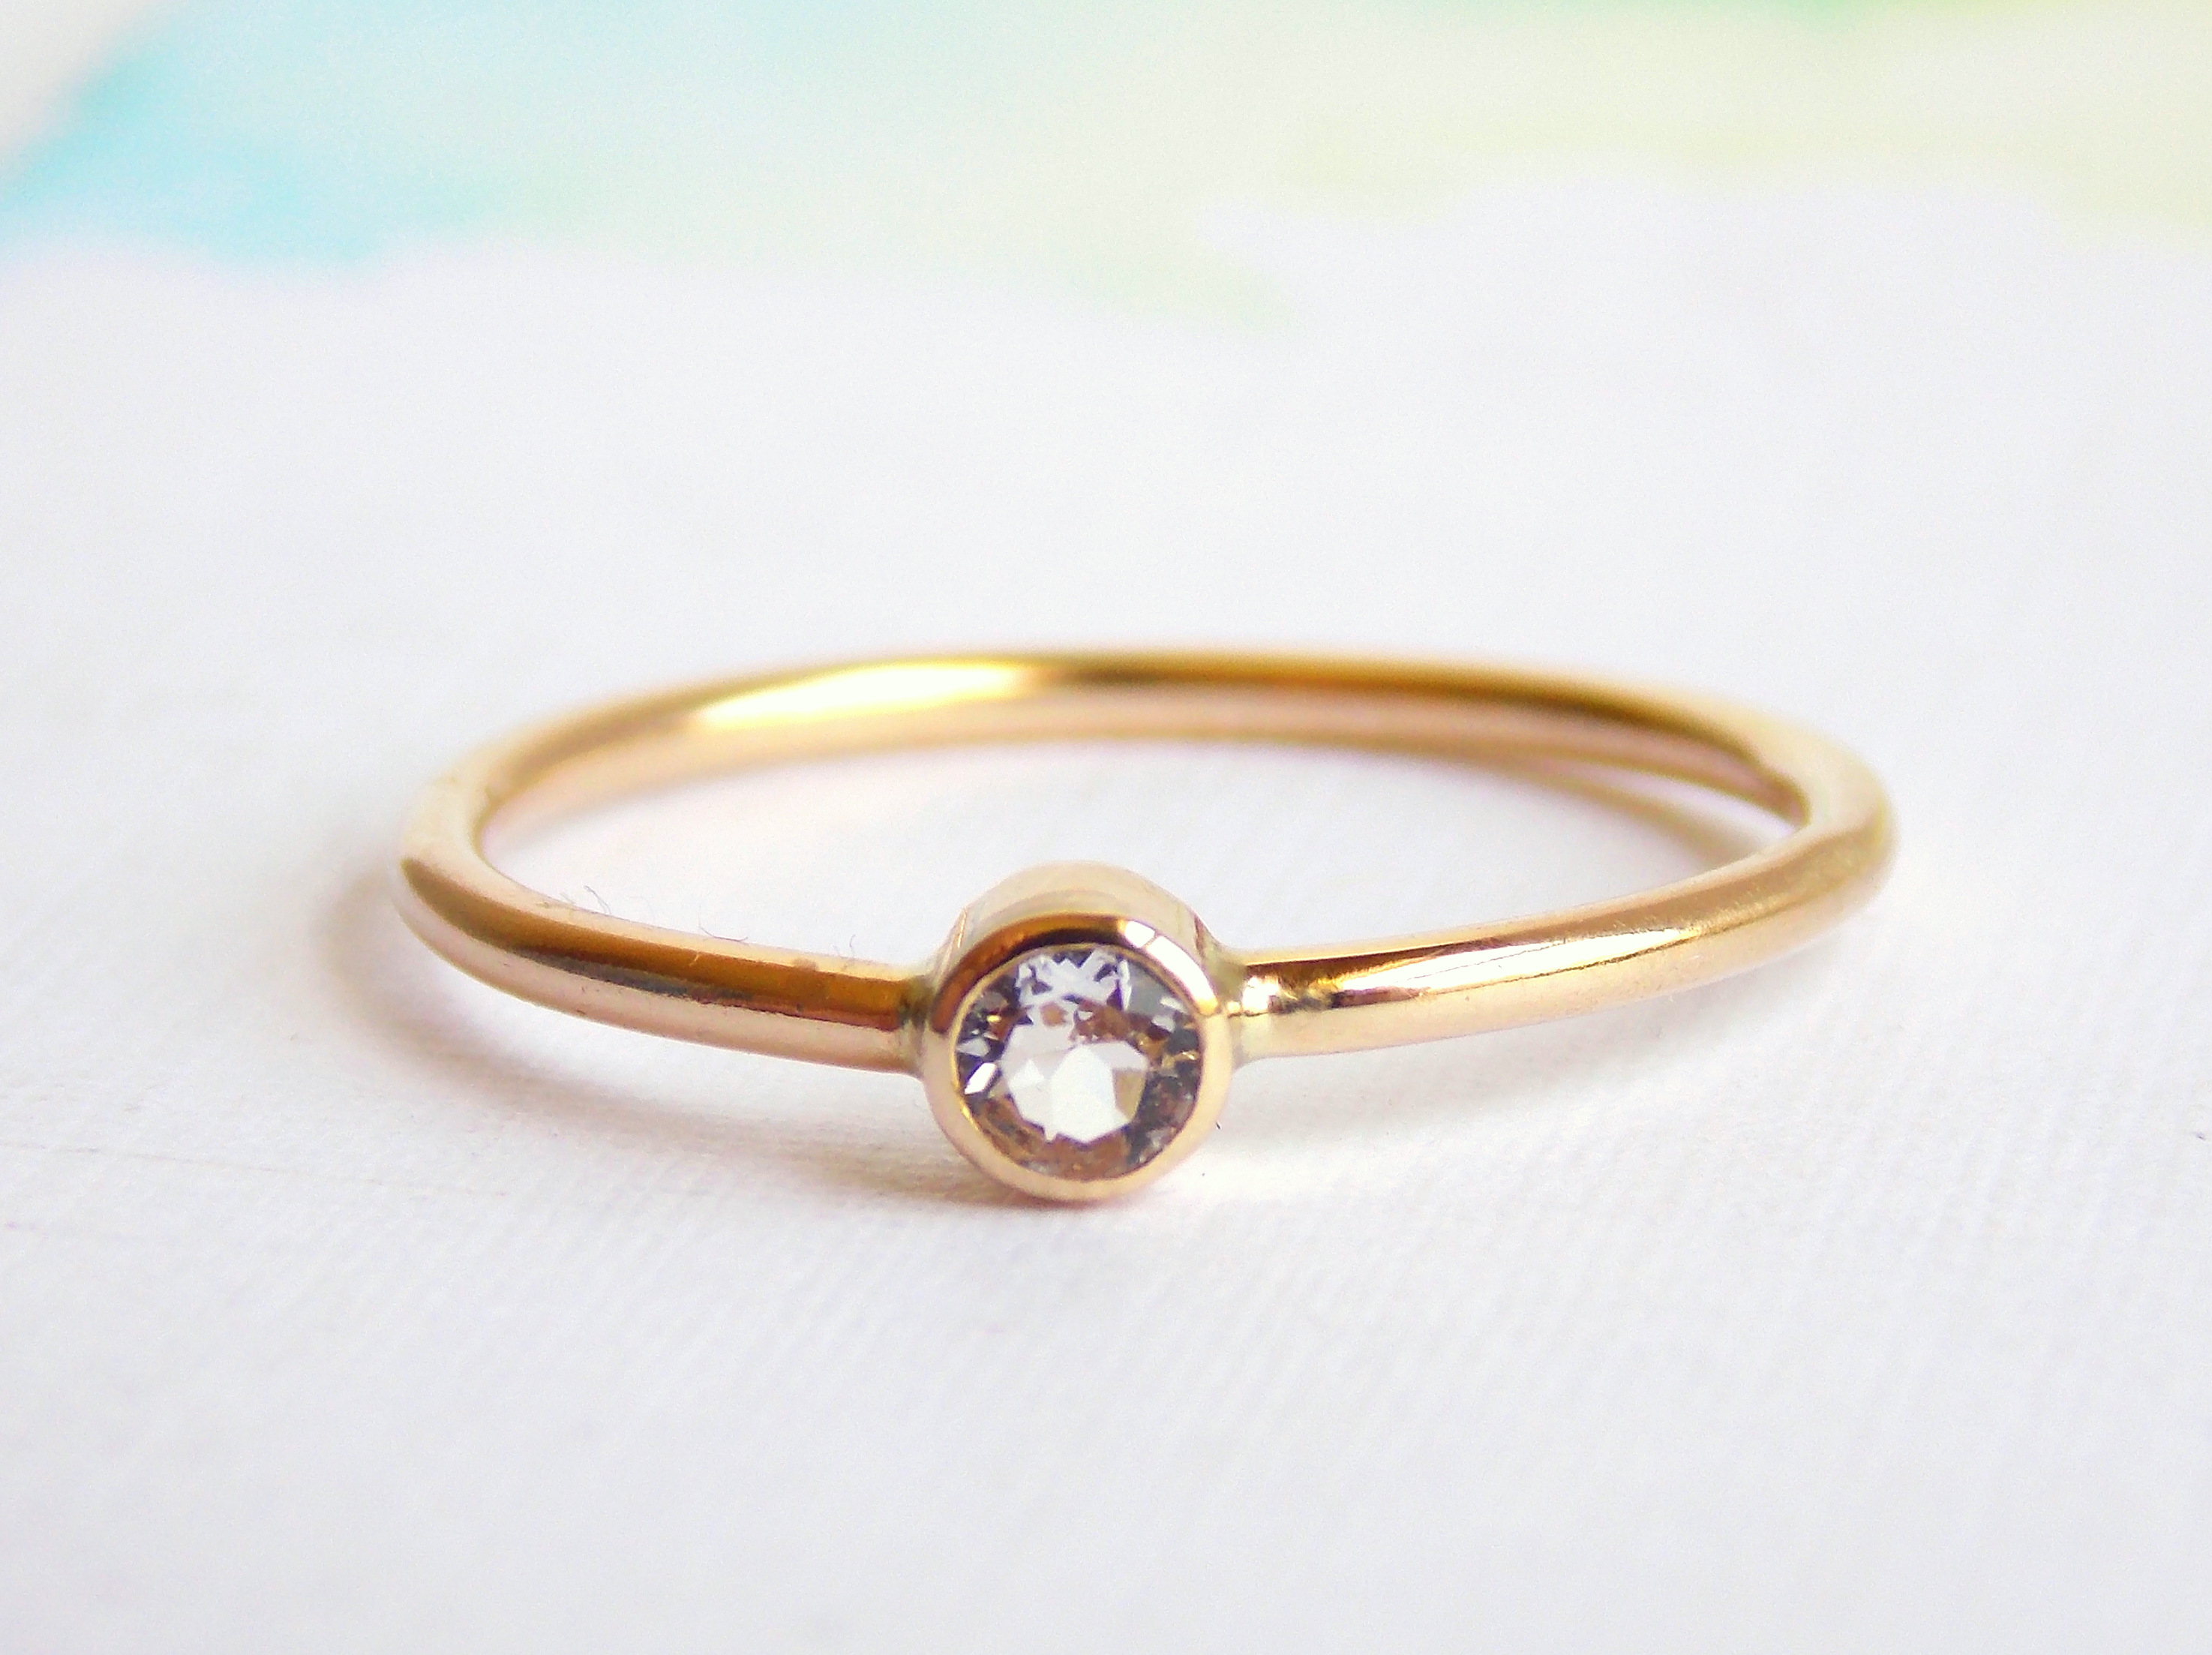 gold london en essentials amp diamond ca and round of hires rose ring pave links vermeil